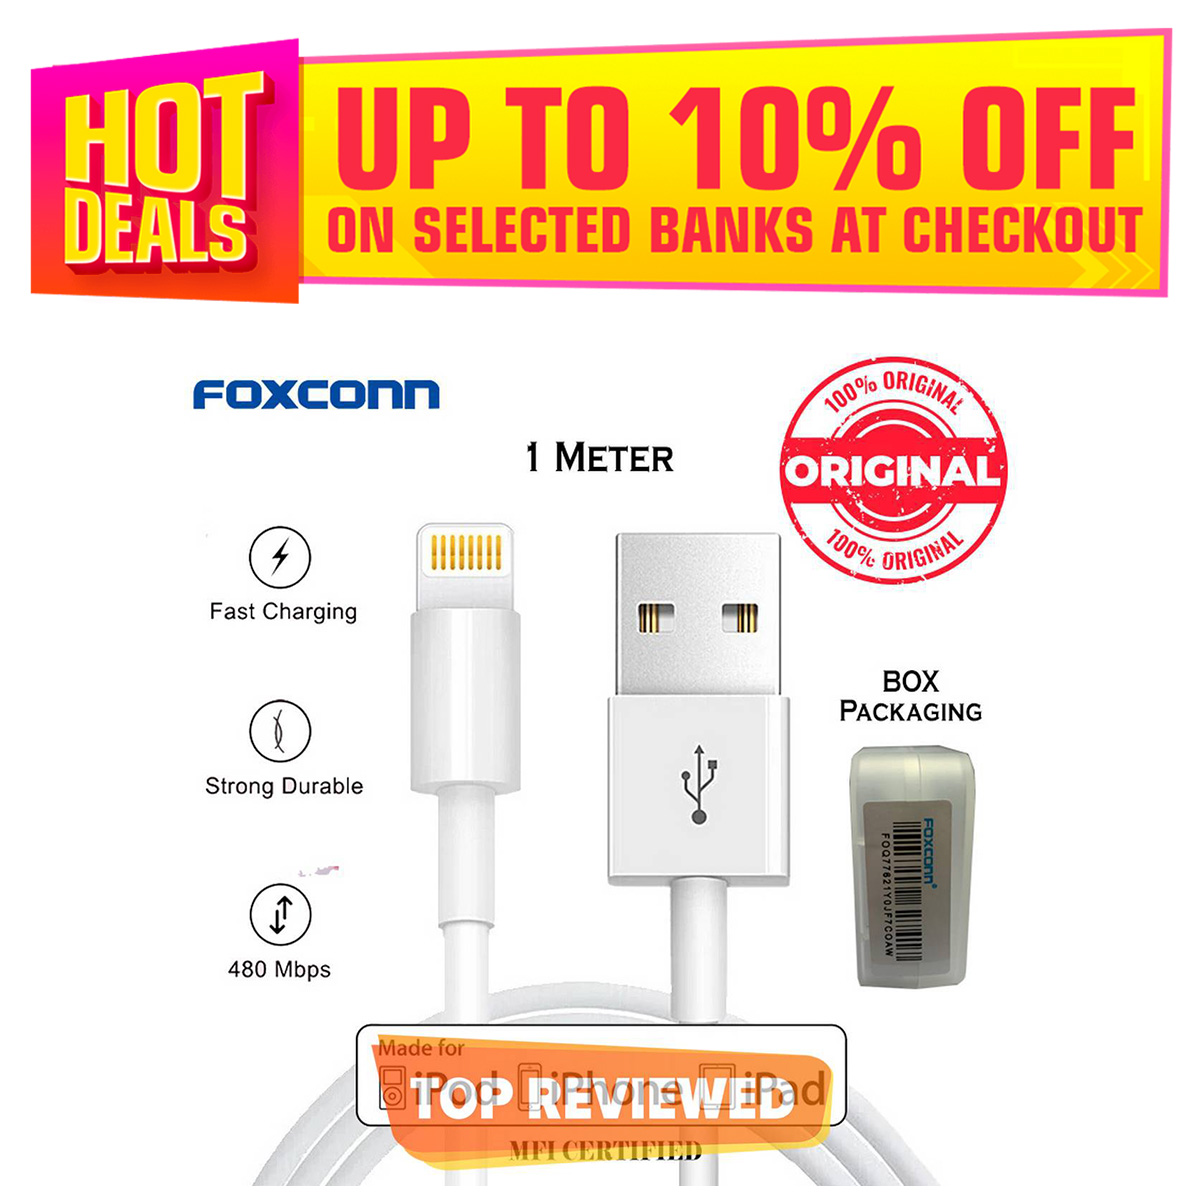 Foxconn iPhone Data Cable Lightning to USB Cable - MFi Certified FAST Charging & Syncing Compatible iPhone 11 Pro Max/11Pro/XS/Max/XR/X/8/8P/7/6/5S Data Cable for iPhone